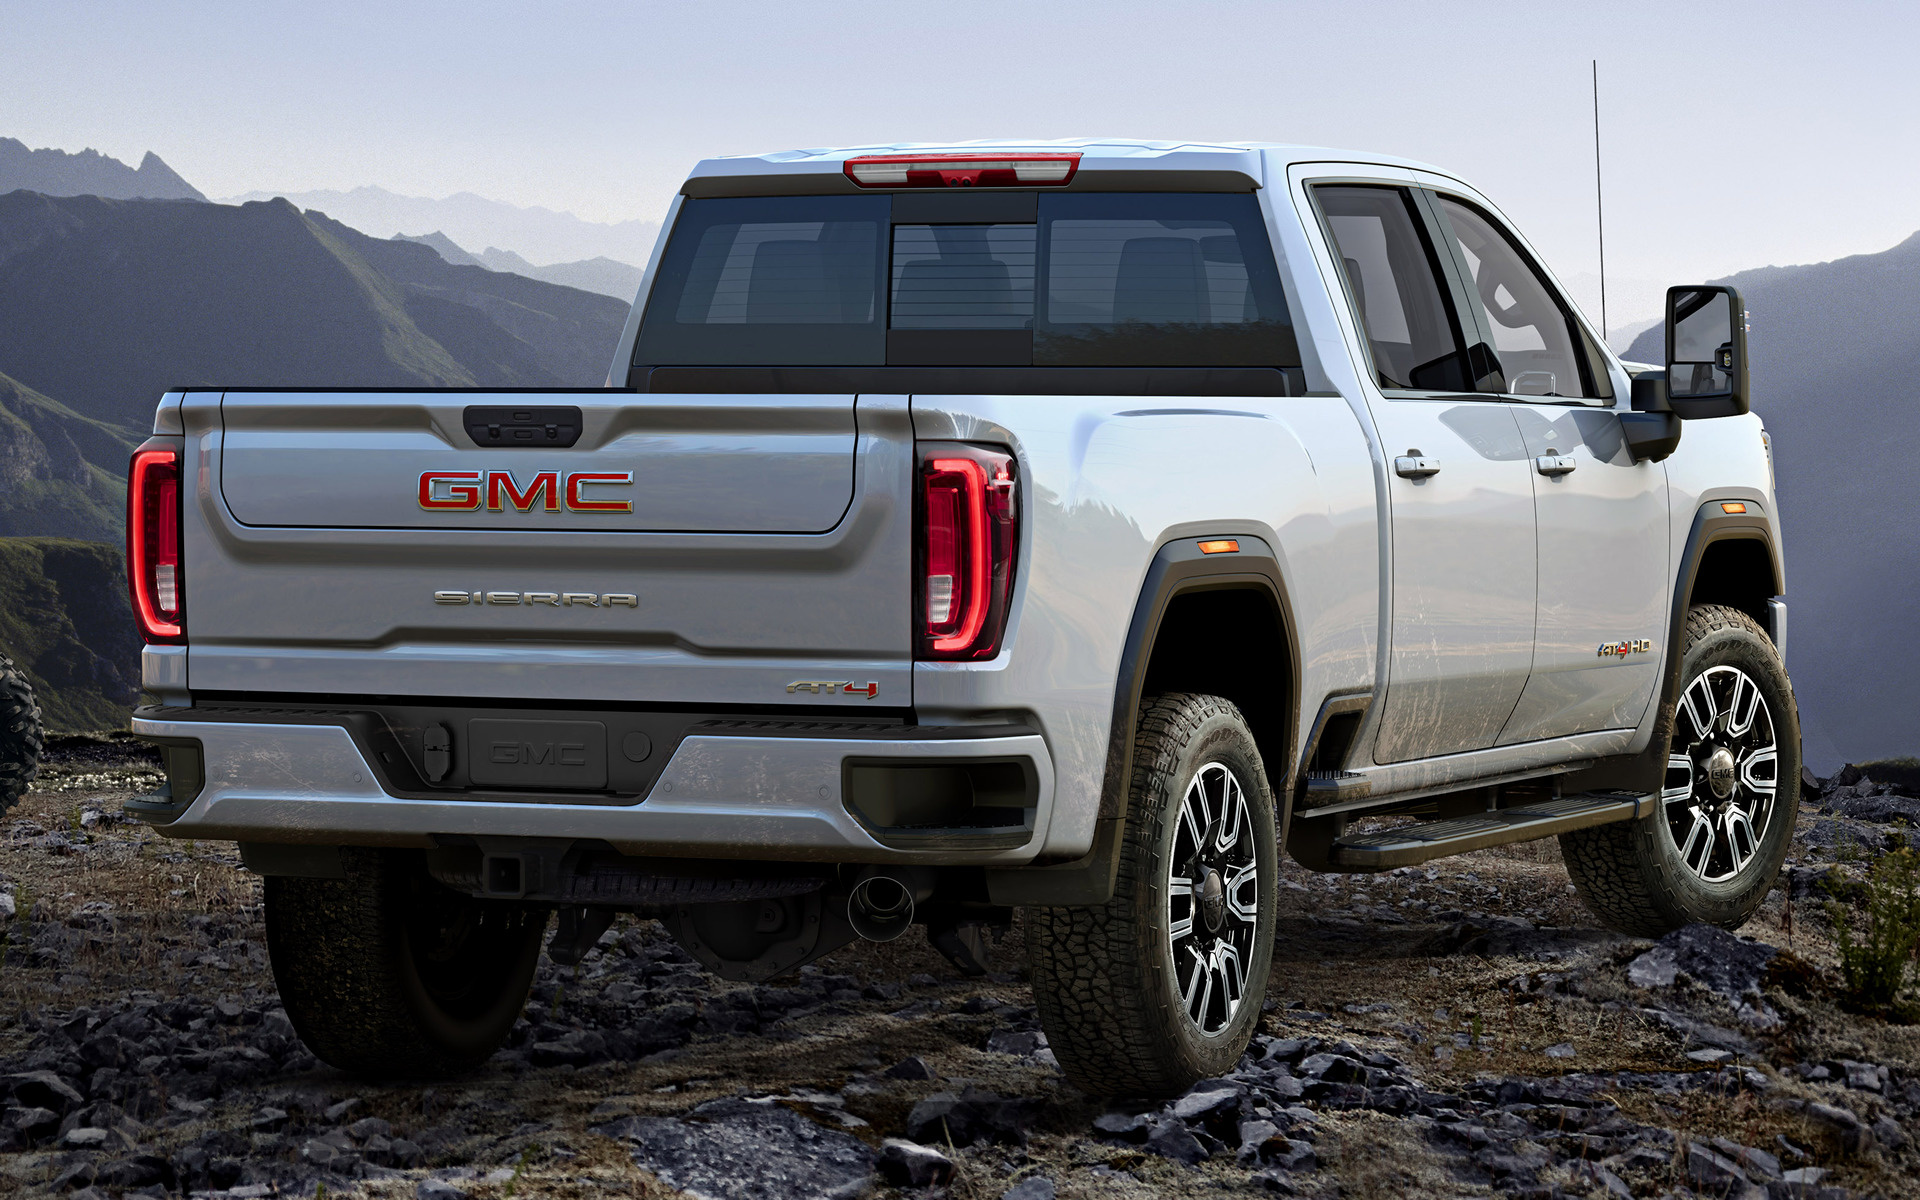 2020 Gmc Sierra 2500 Hd At4 Crew Cab Wallpapers And Hd